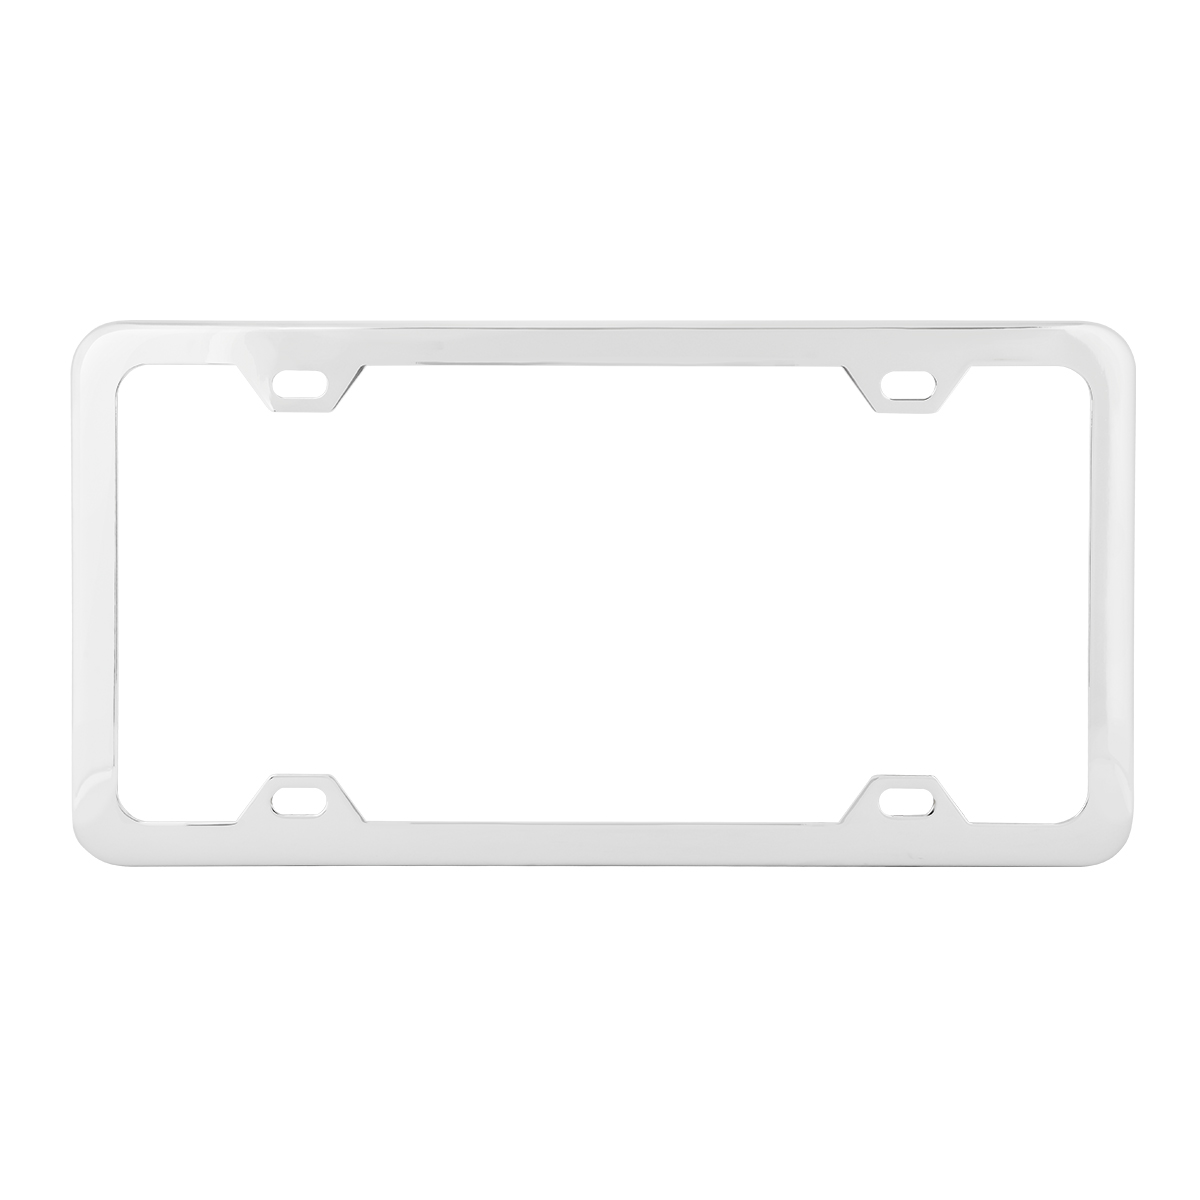 60412 Plain Chrome Plated 4 Hole License Plate Frame